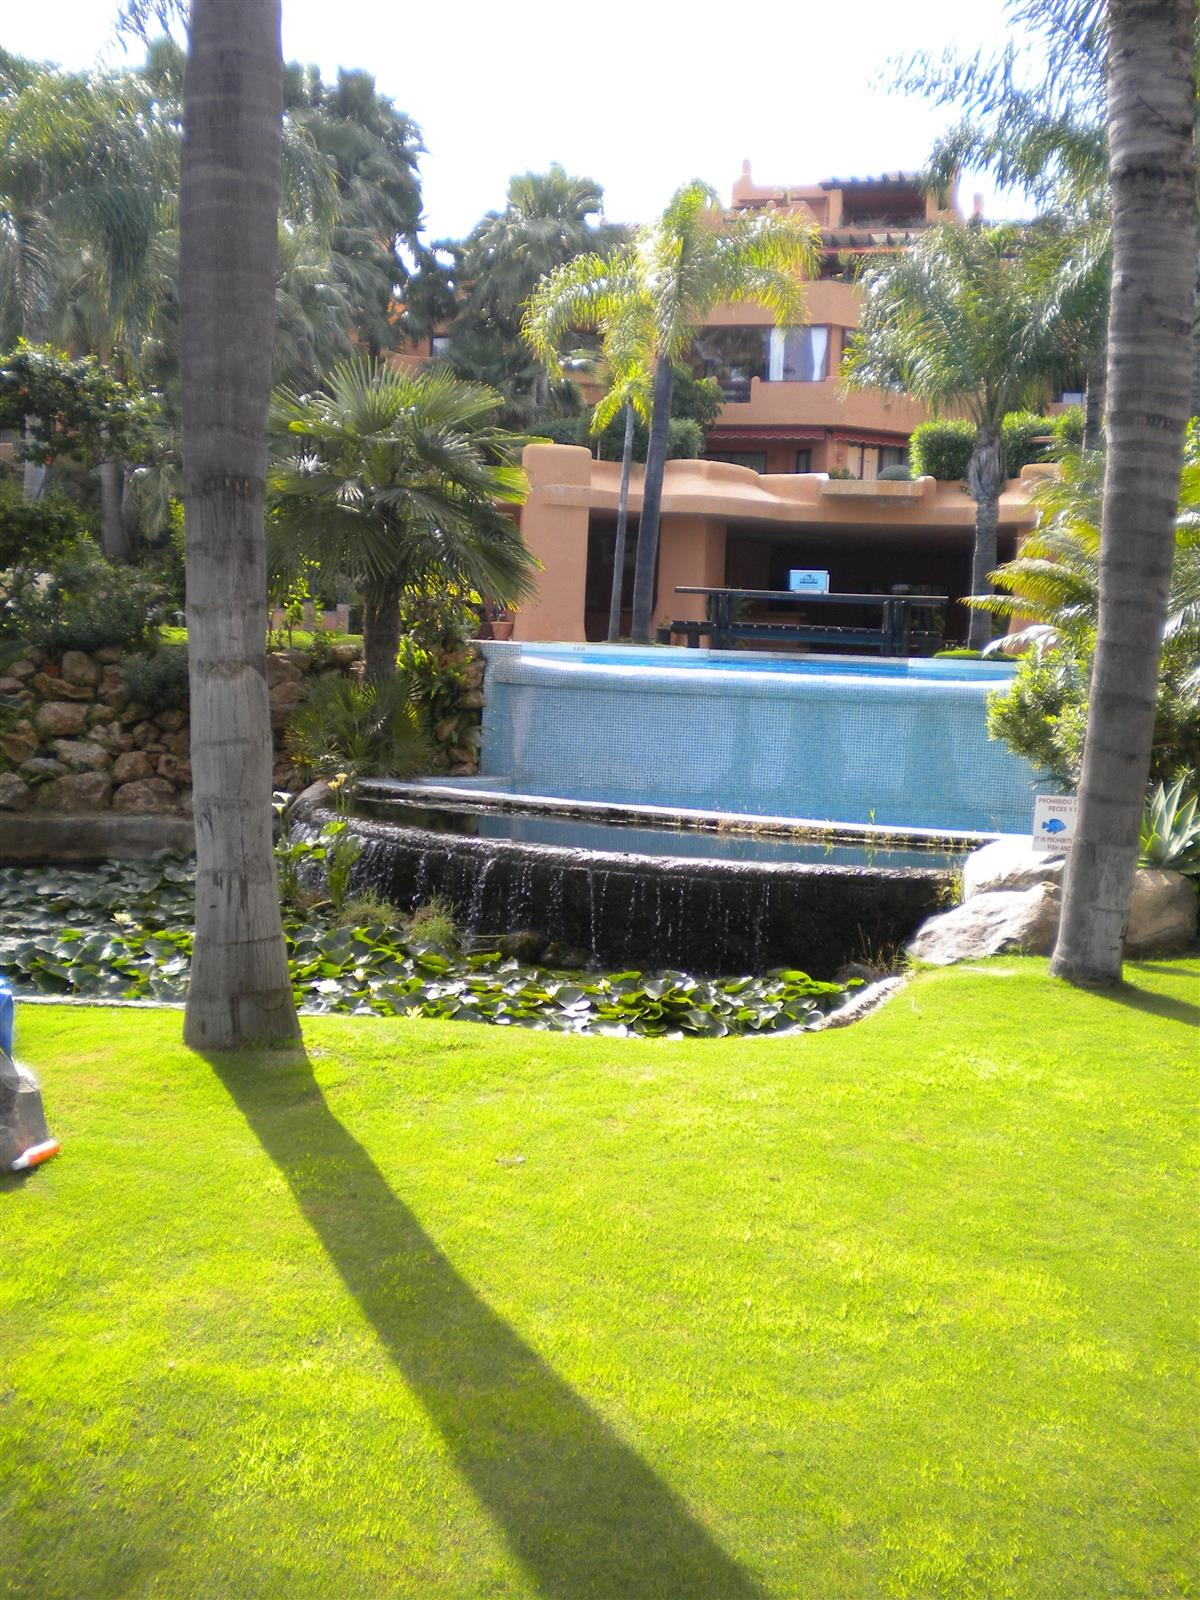 Tropical gardens lead to swimming pool